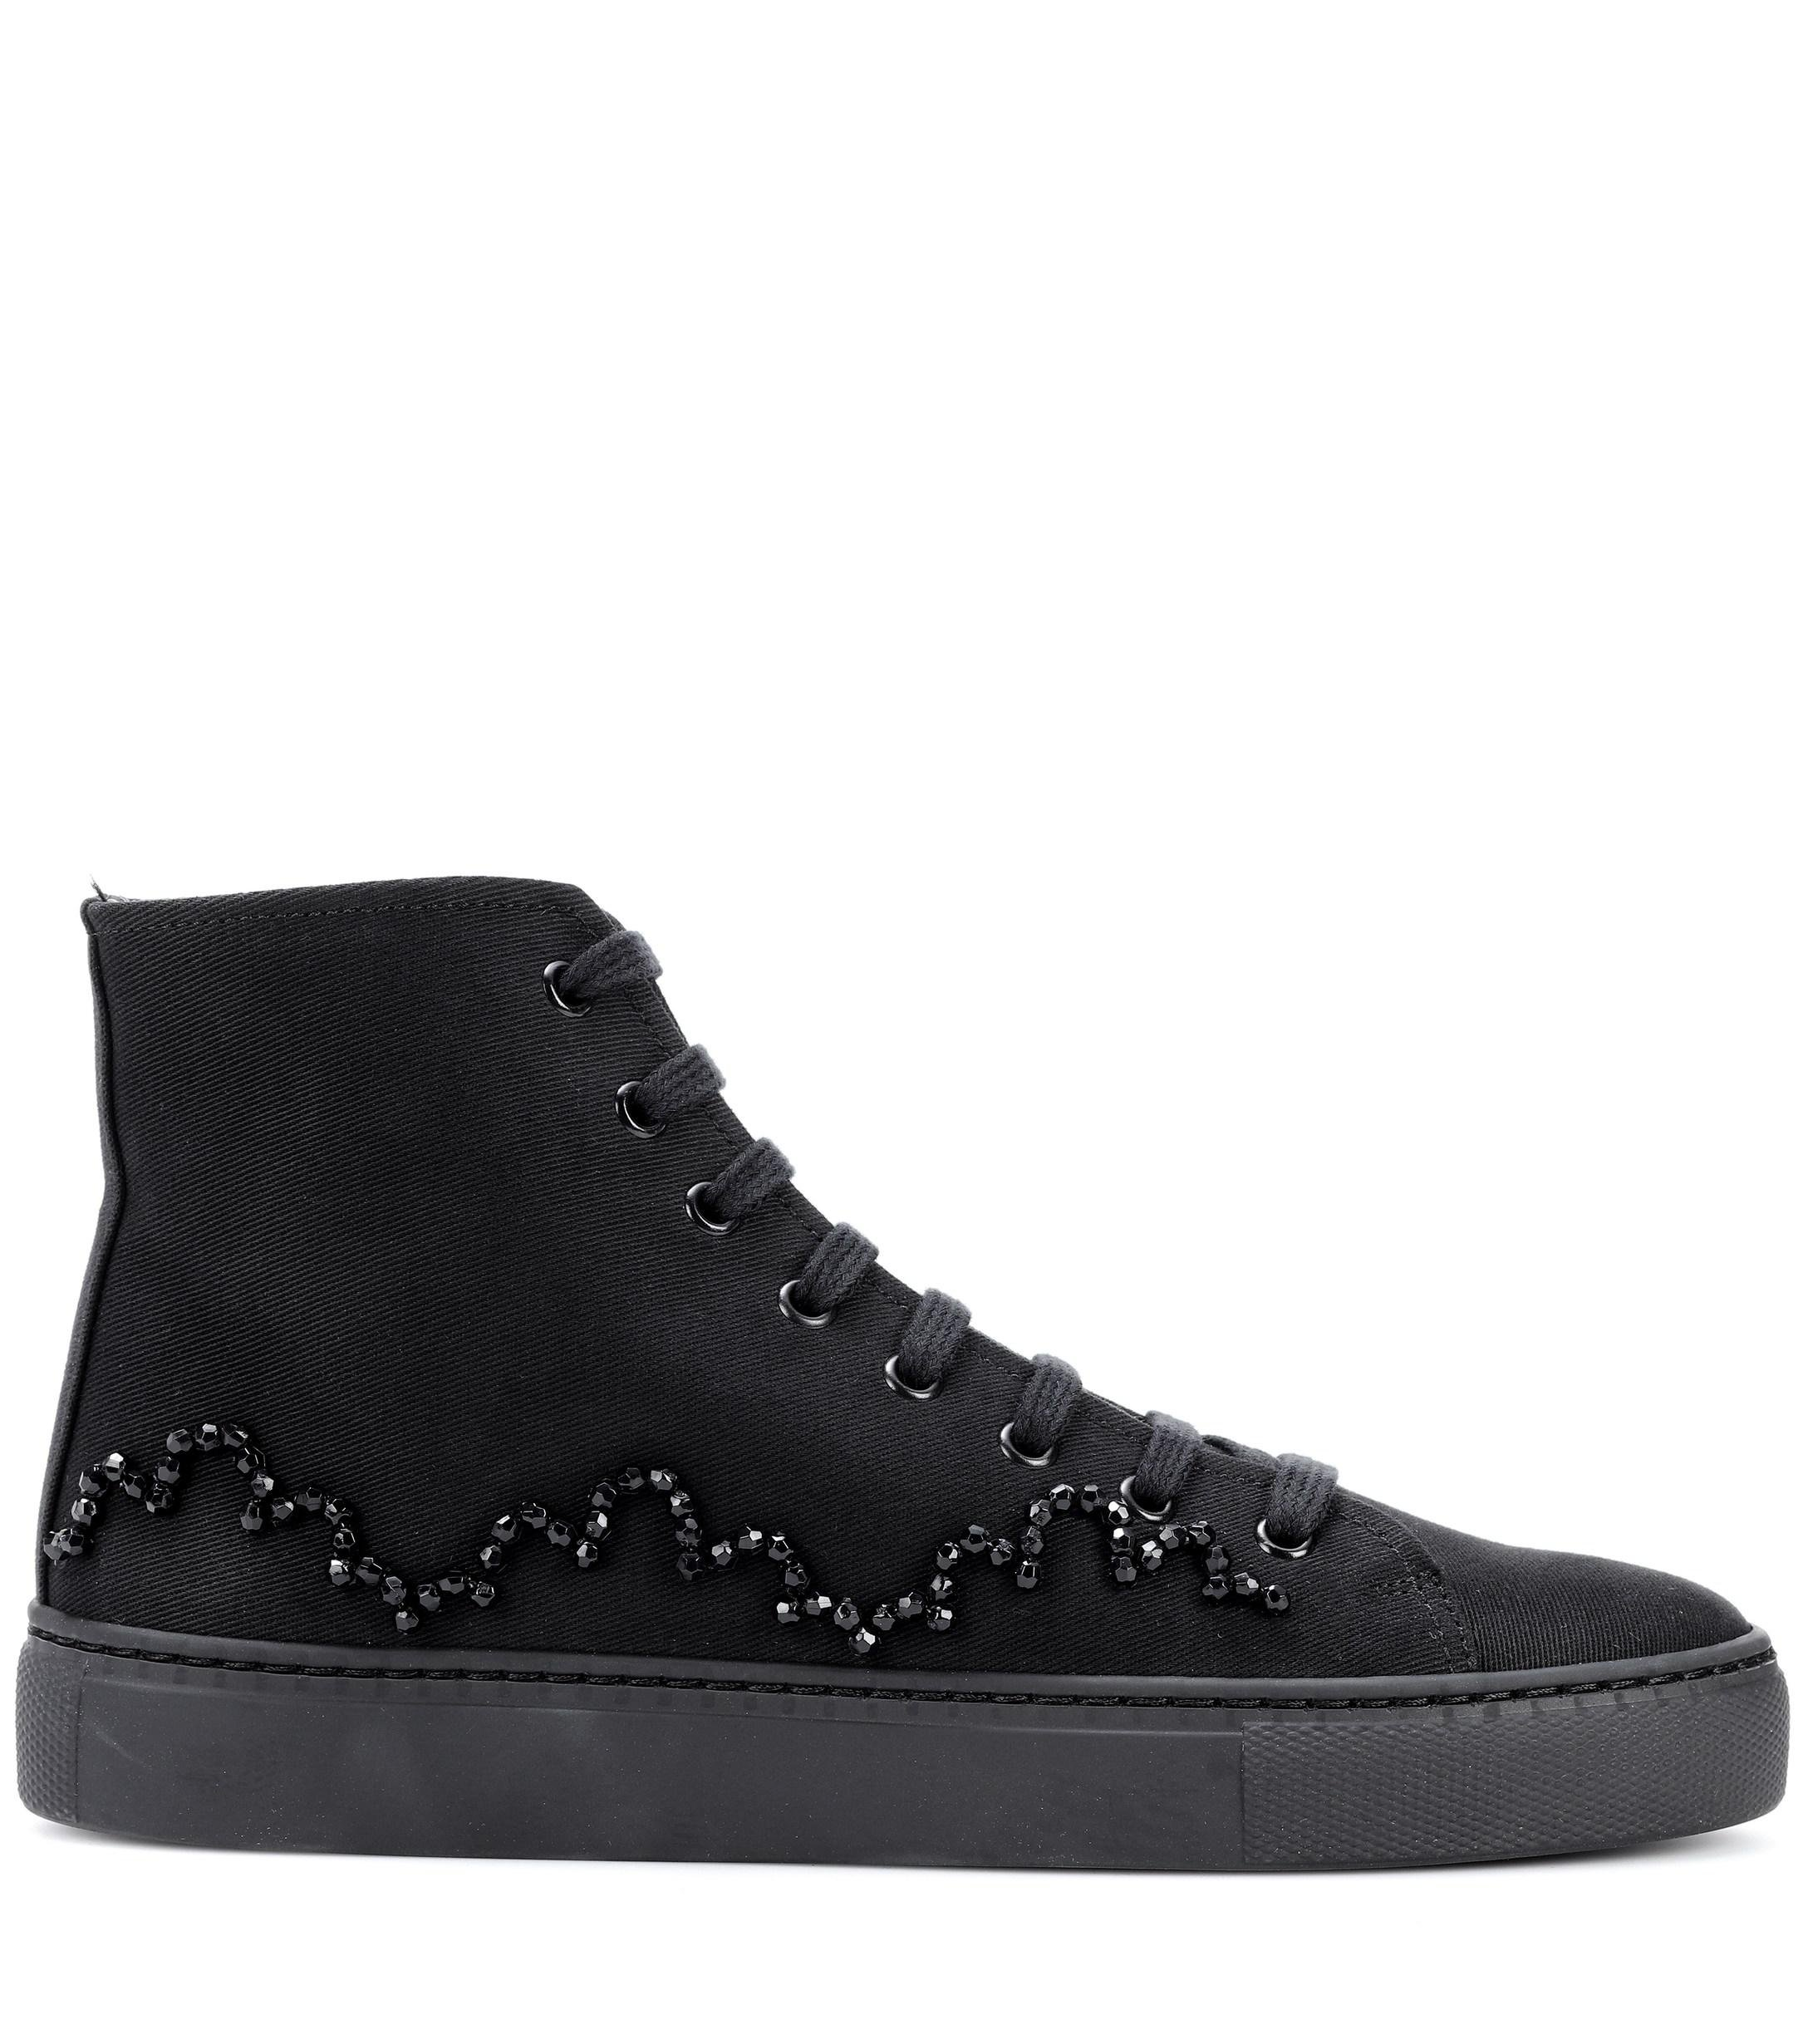 Simone Rocha Embellished Canvas Sneakers in Black